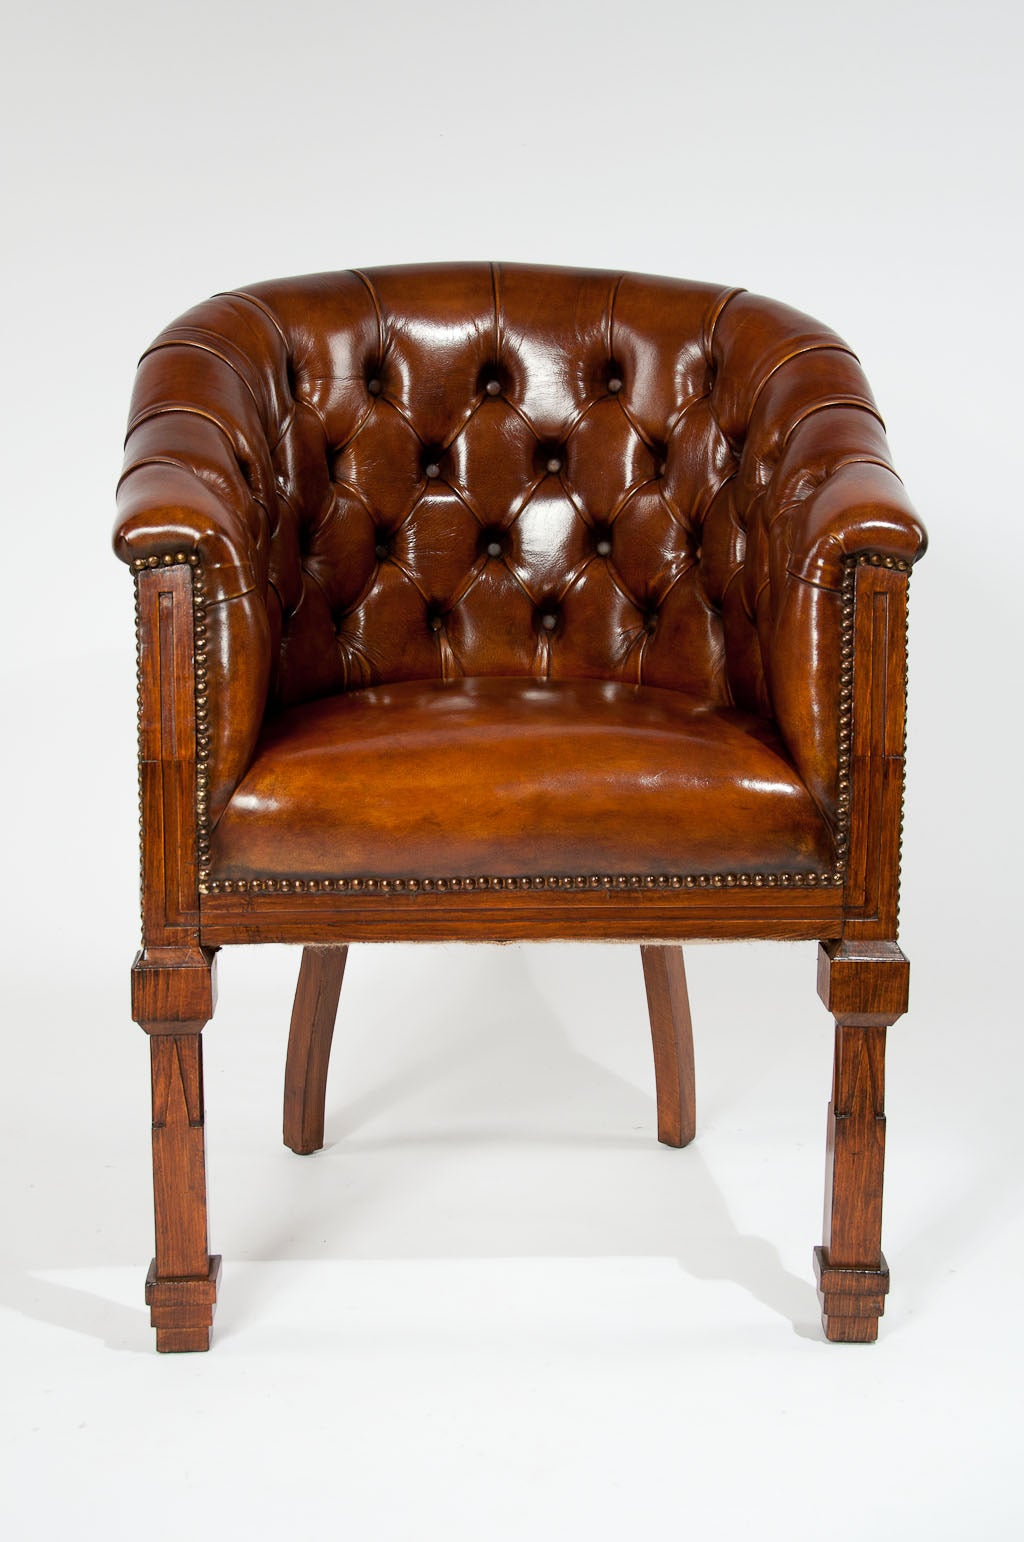 Antique Pair of Leather Tub Chairs For Sale 2 - Antique Pair Of Leather Tub Chairs At 1stdibs